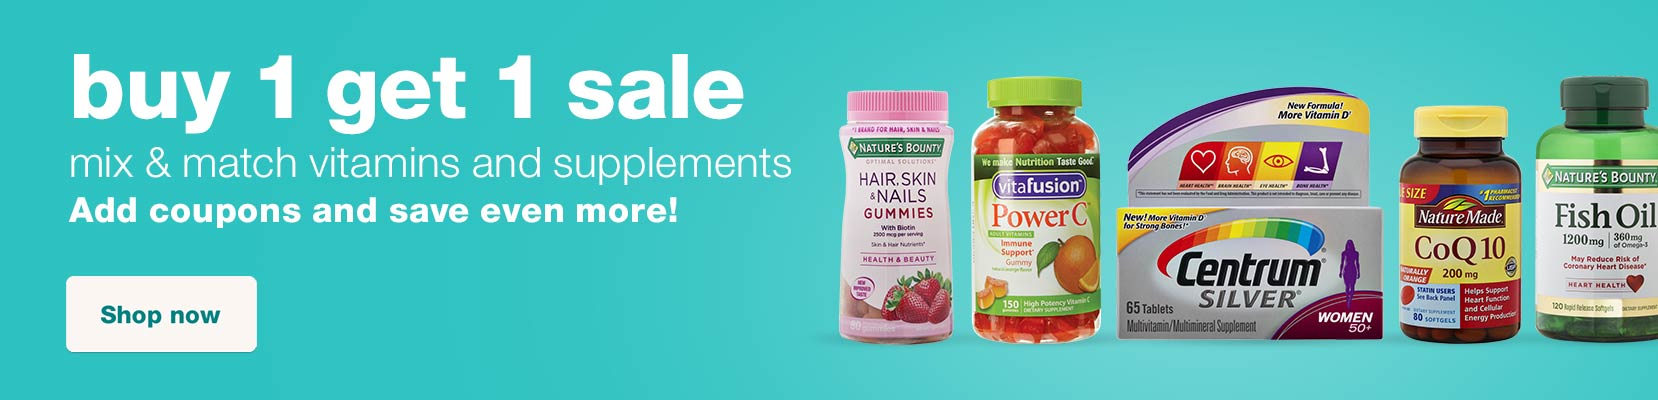 buy 1 get 1 sale. mix & match vitamins and supplements. Add coupons and save even more! Shop now.